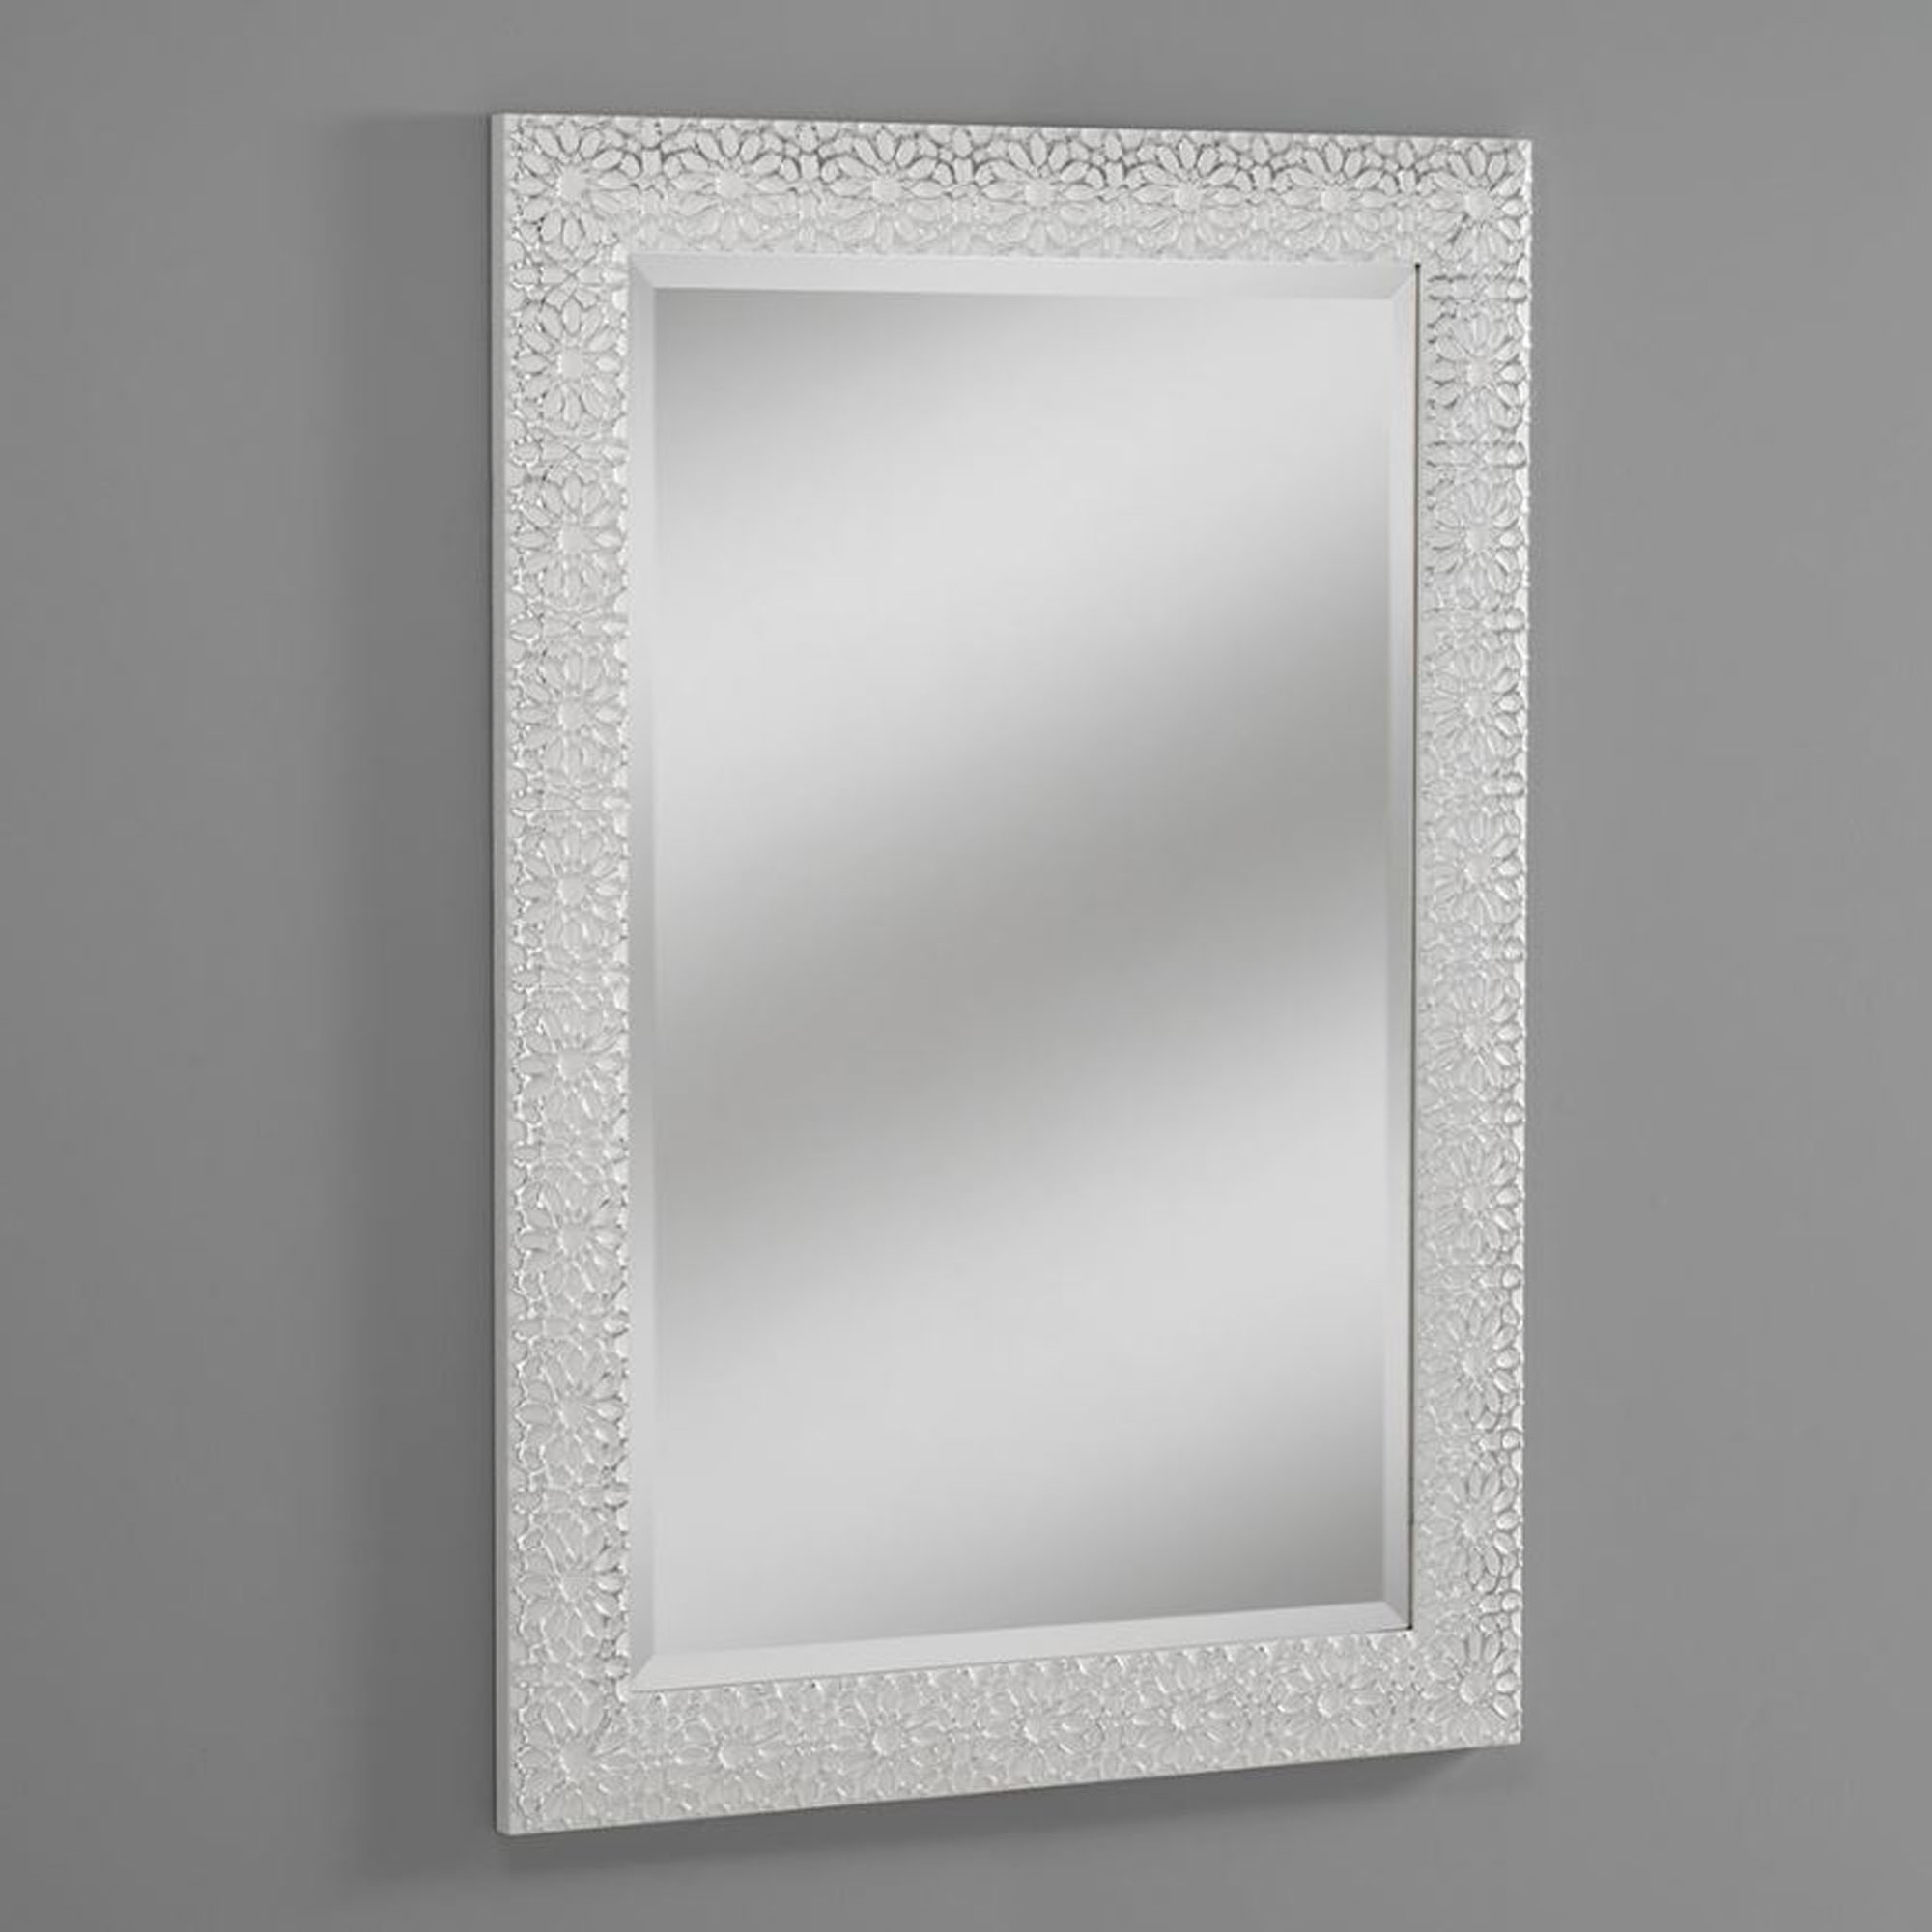 Decorative Cheap Wall Mirrors Inside Most Recent Petal White Decorative Wall Mirror (View 7 of 20)